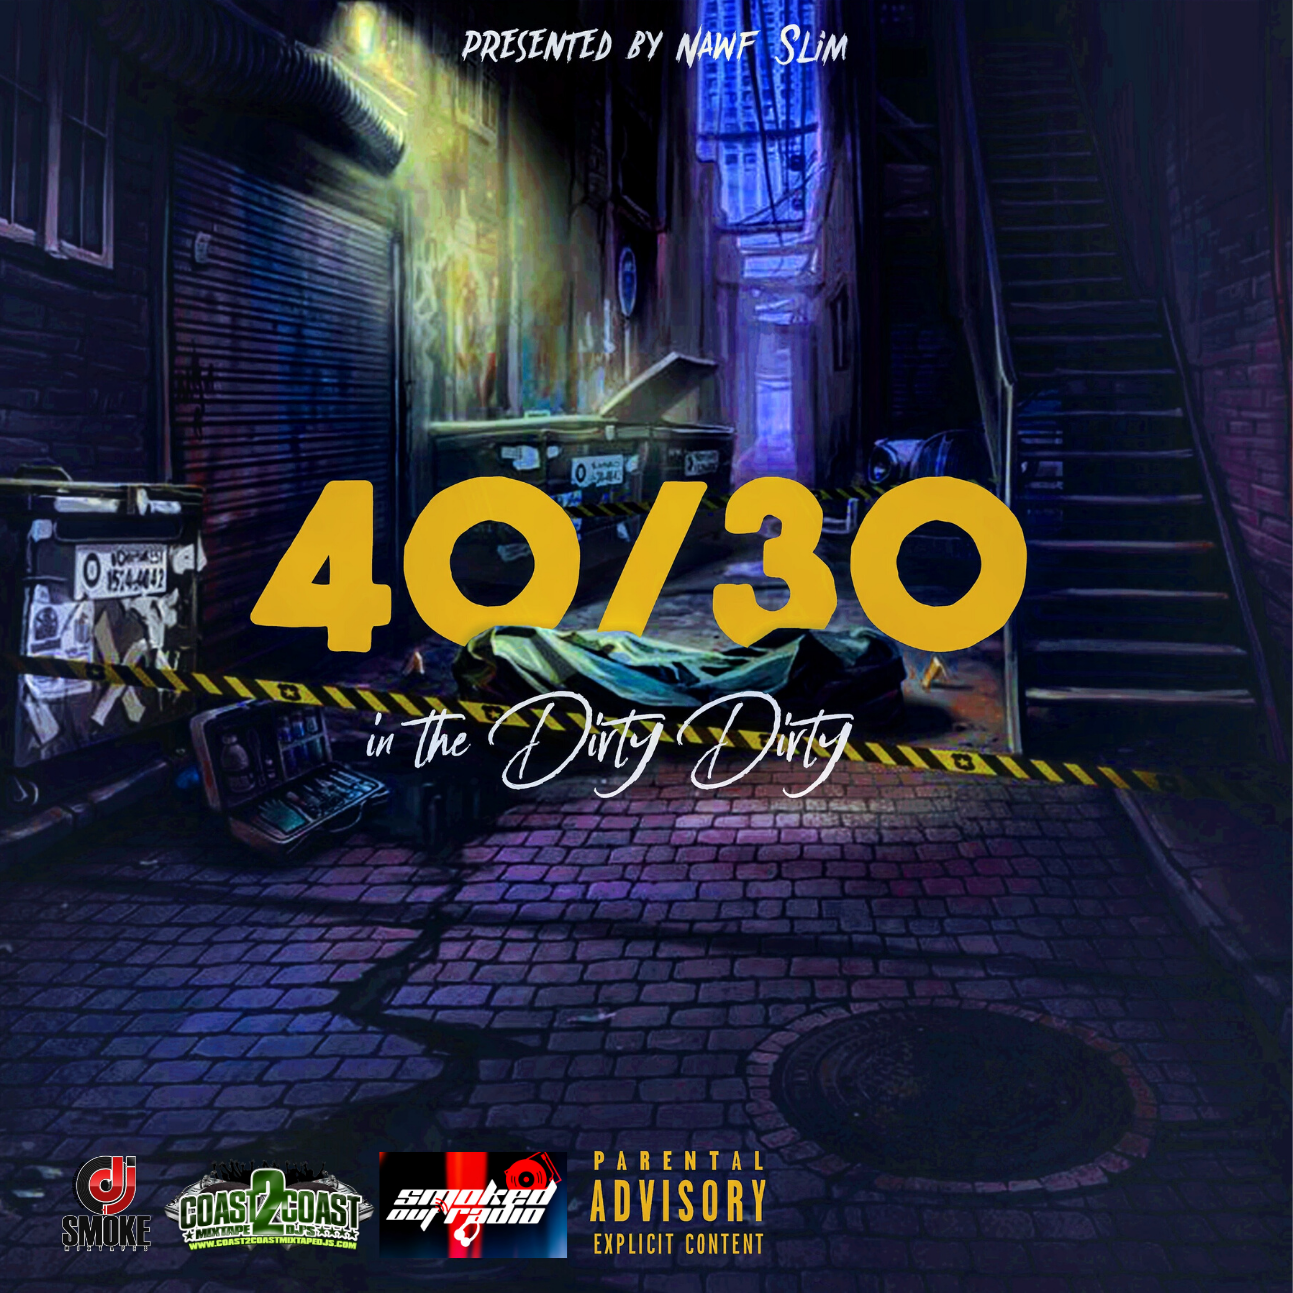 Nawf Slim Presents: 4030 In The Dirty Dirty Hosted by Dj Smoke